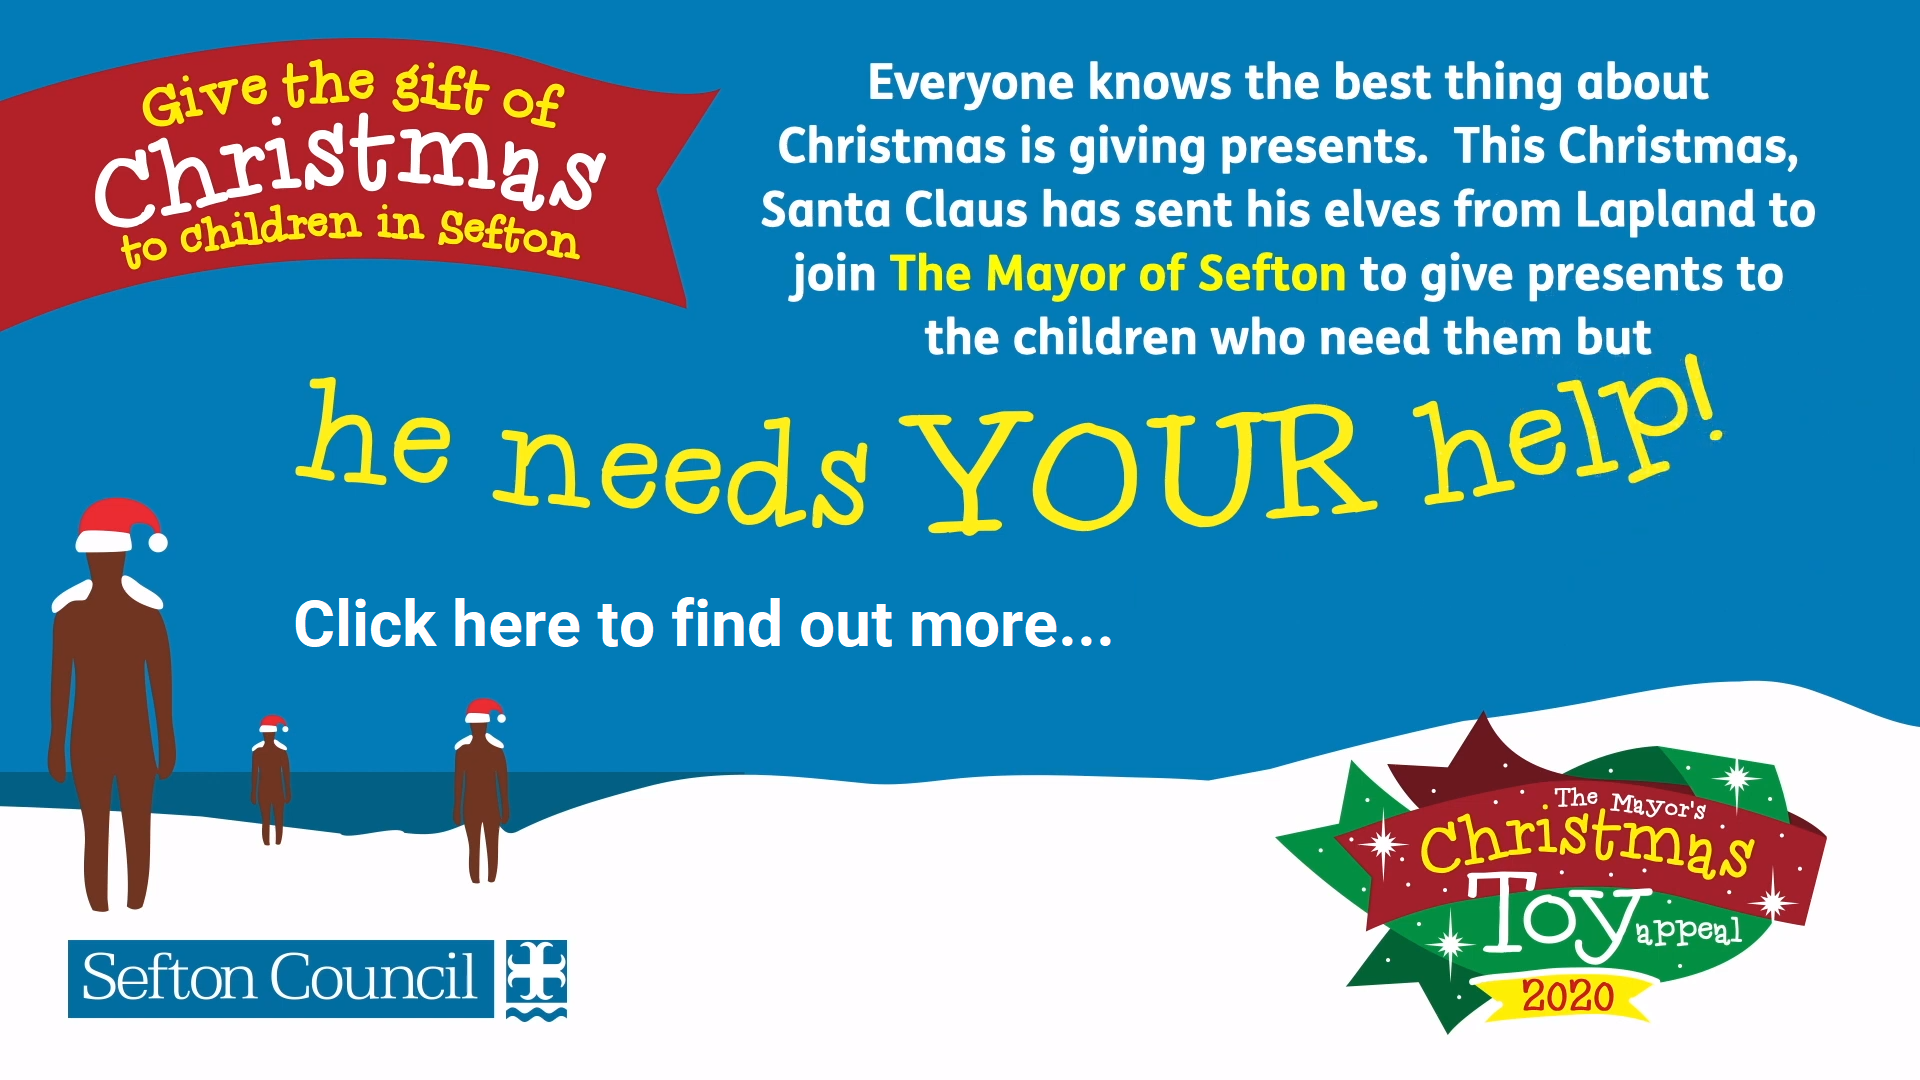 Sefton Christmas Toy Appeal 2020!